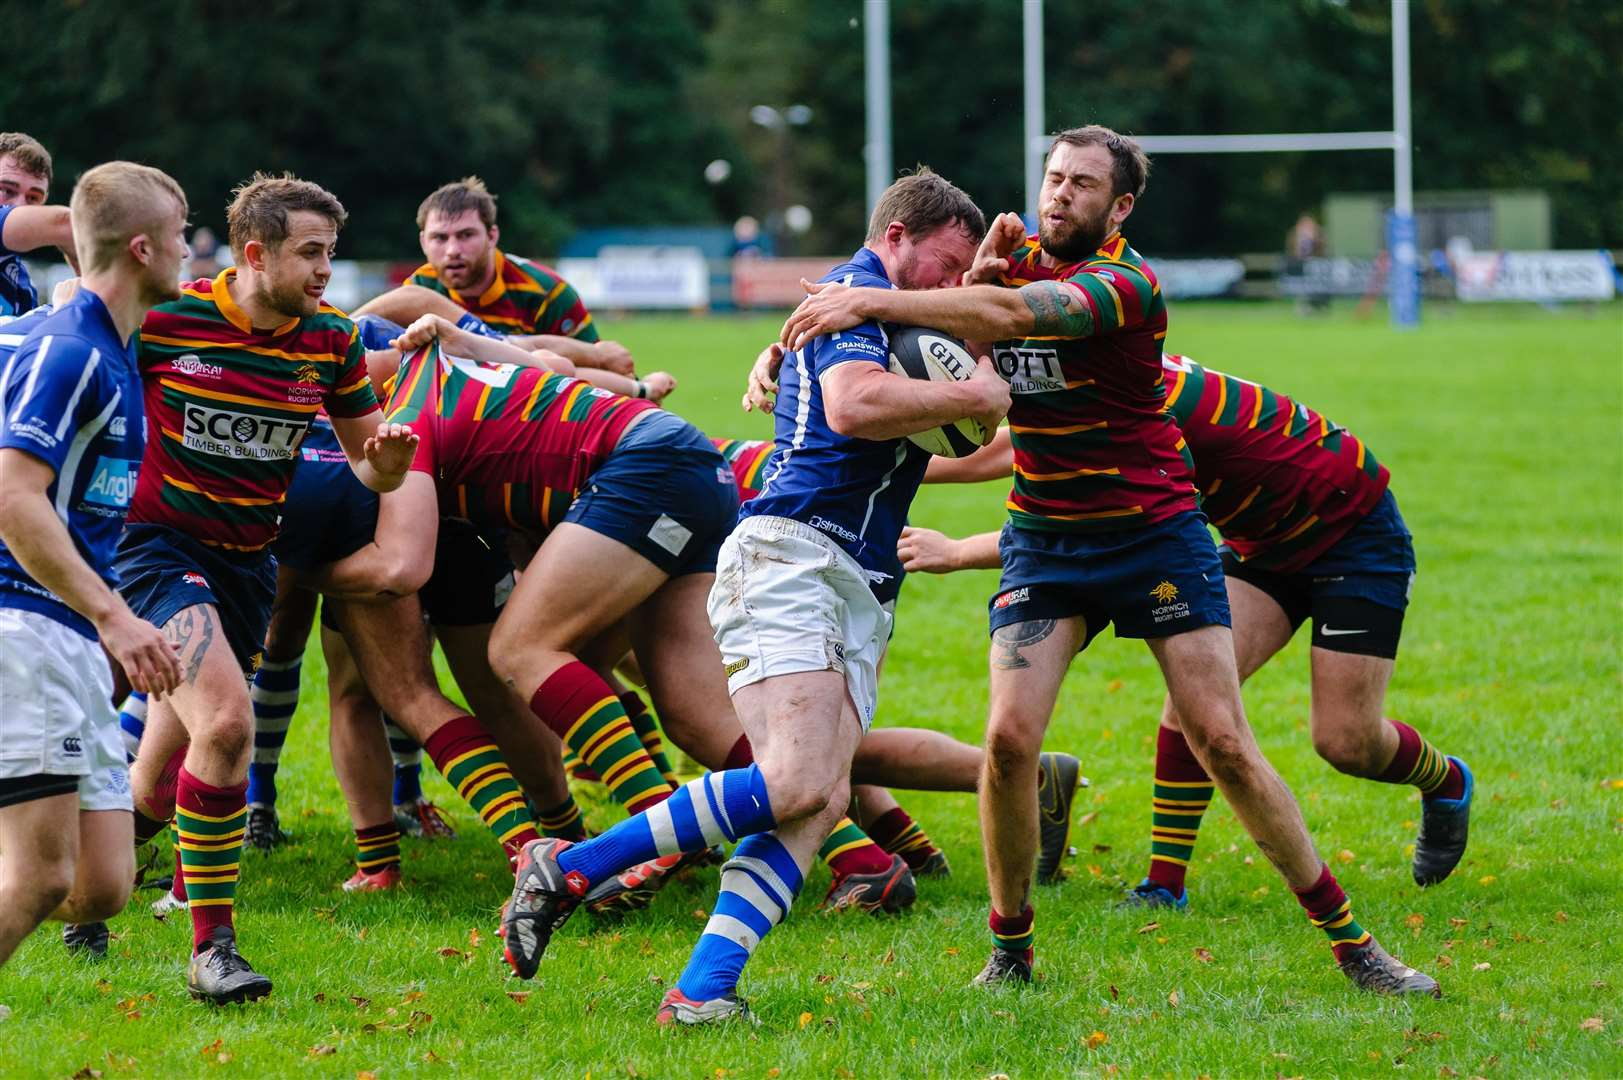 Rugby action from Diss v Norwich - Deaglan Hall..Mark Bullimore Photography 2019. (31887618)